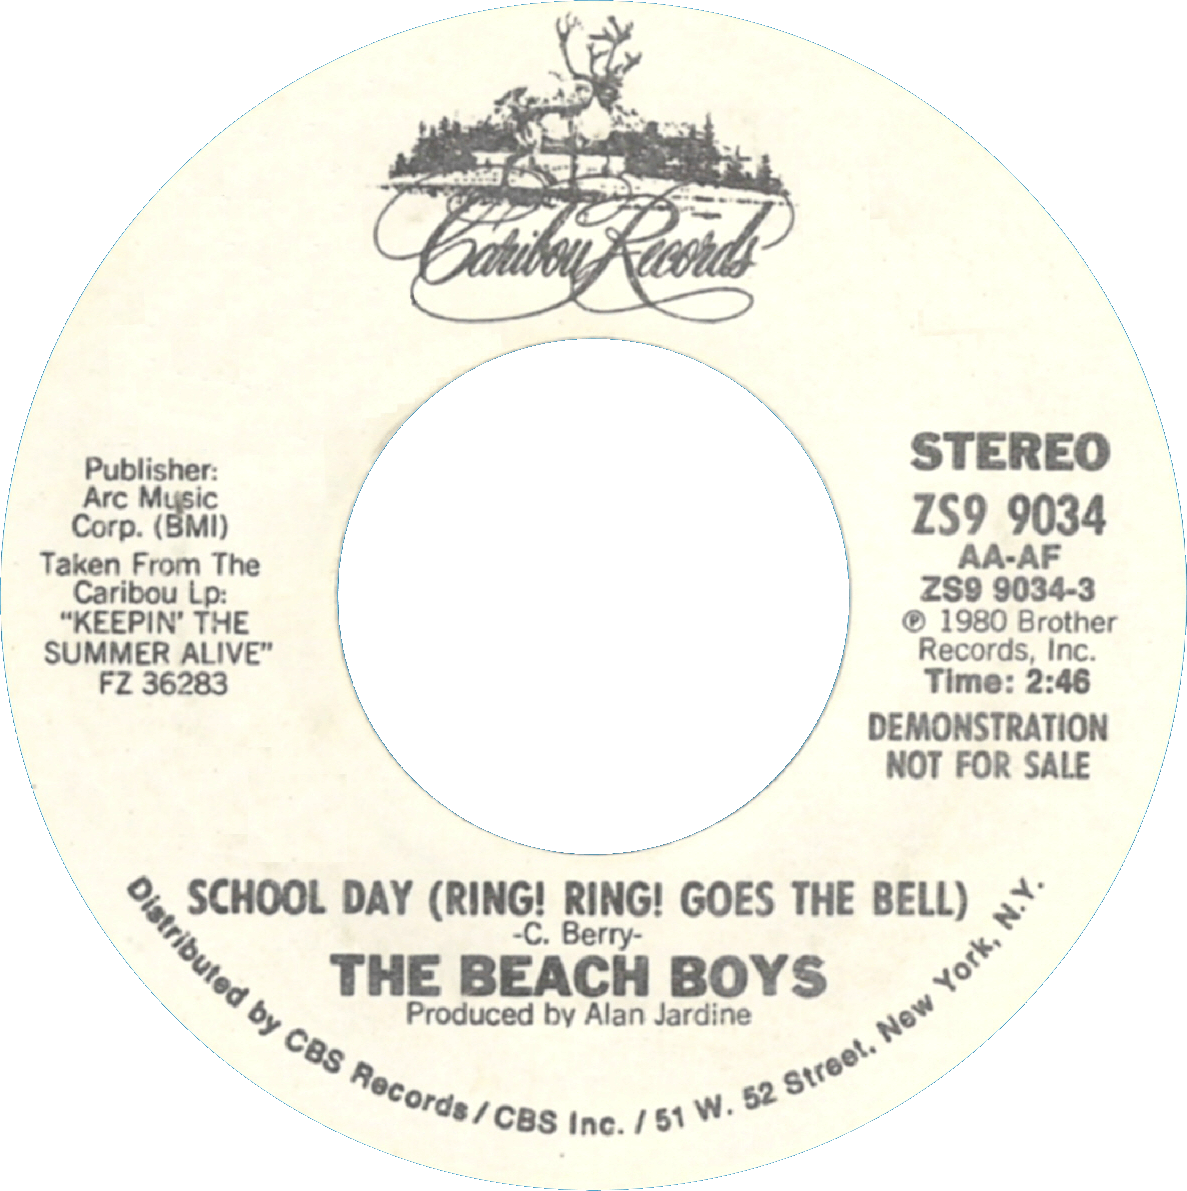 School Day cover